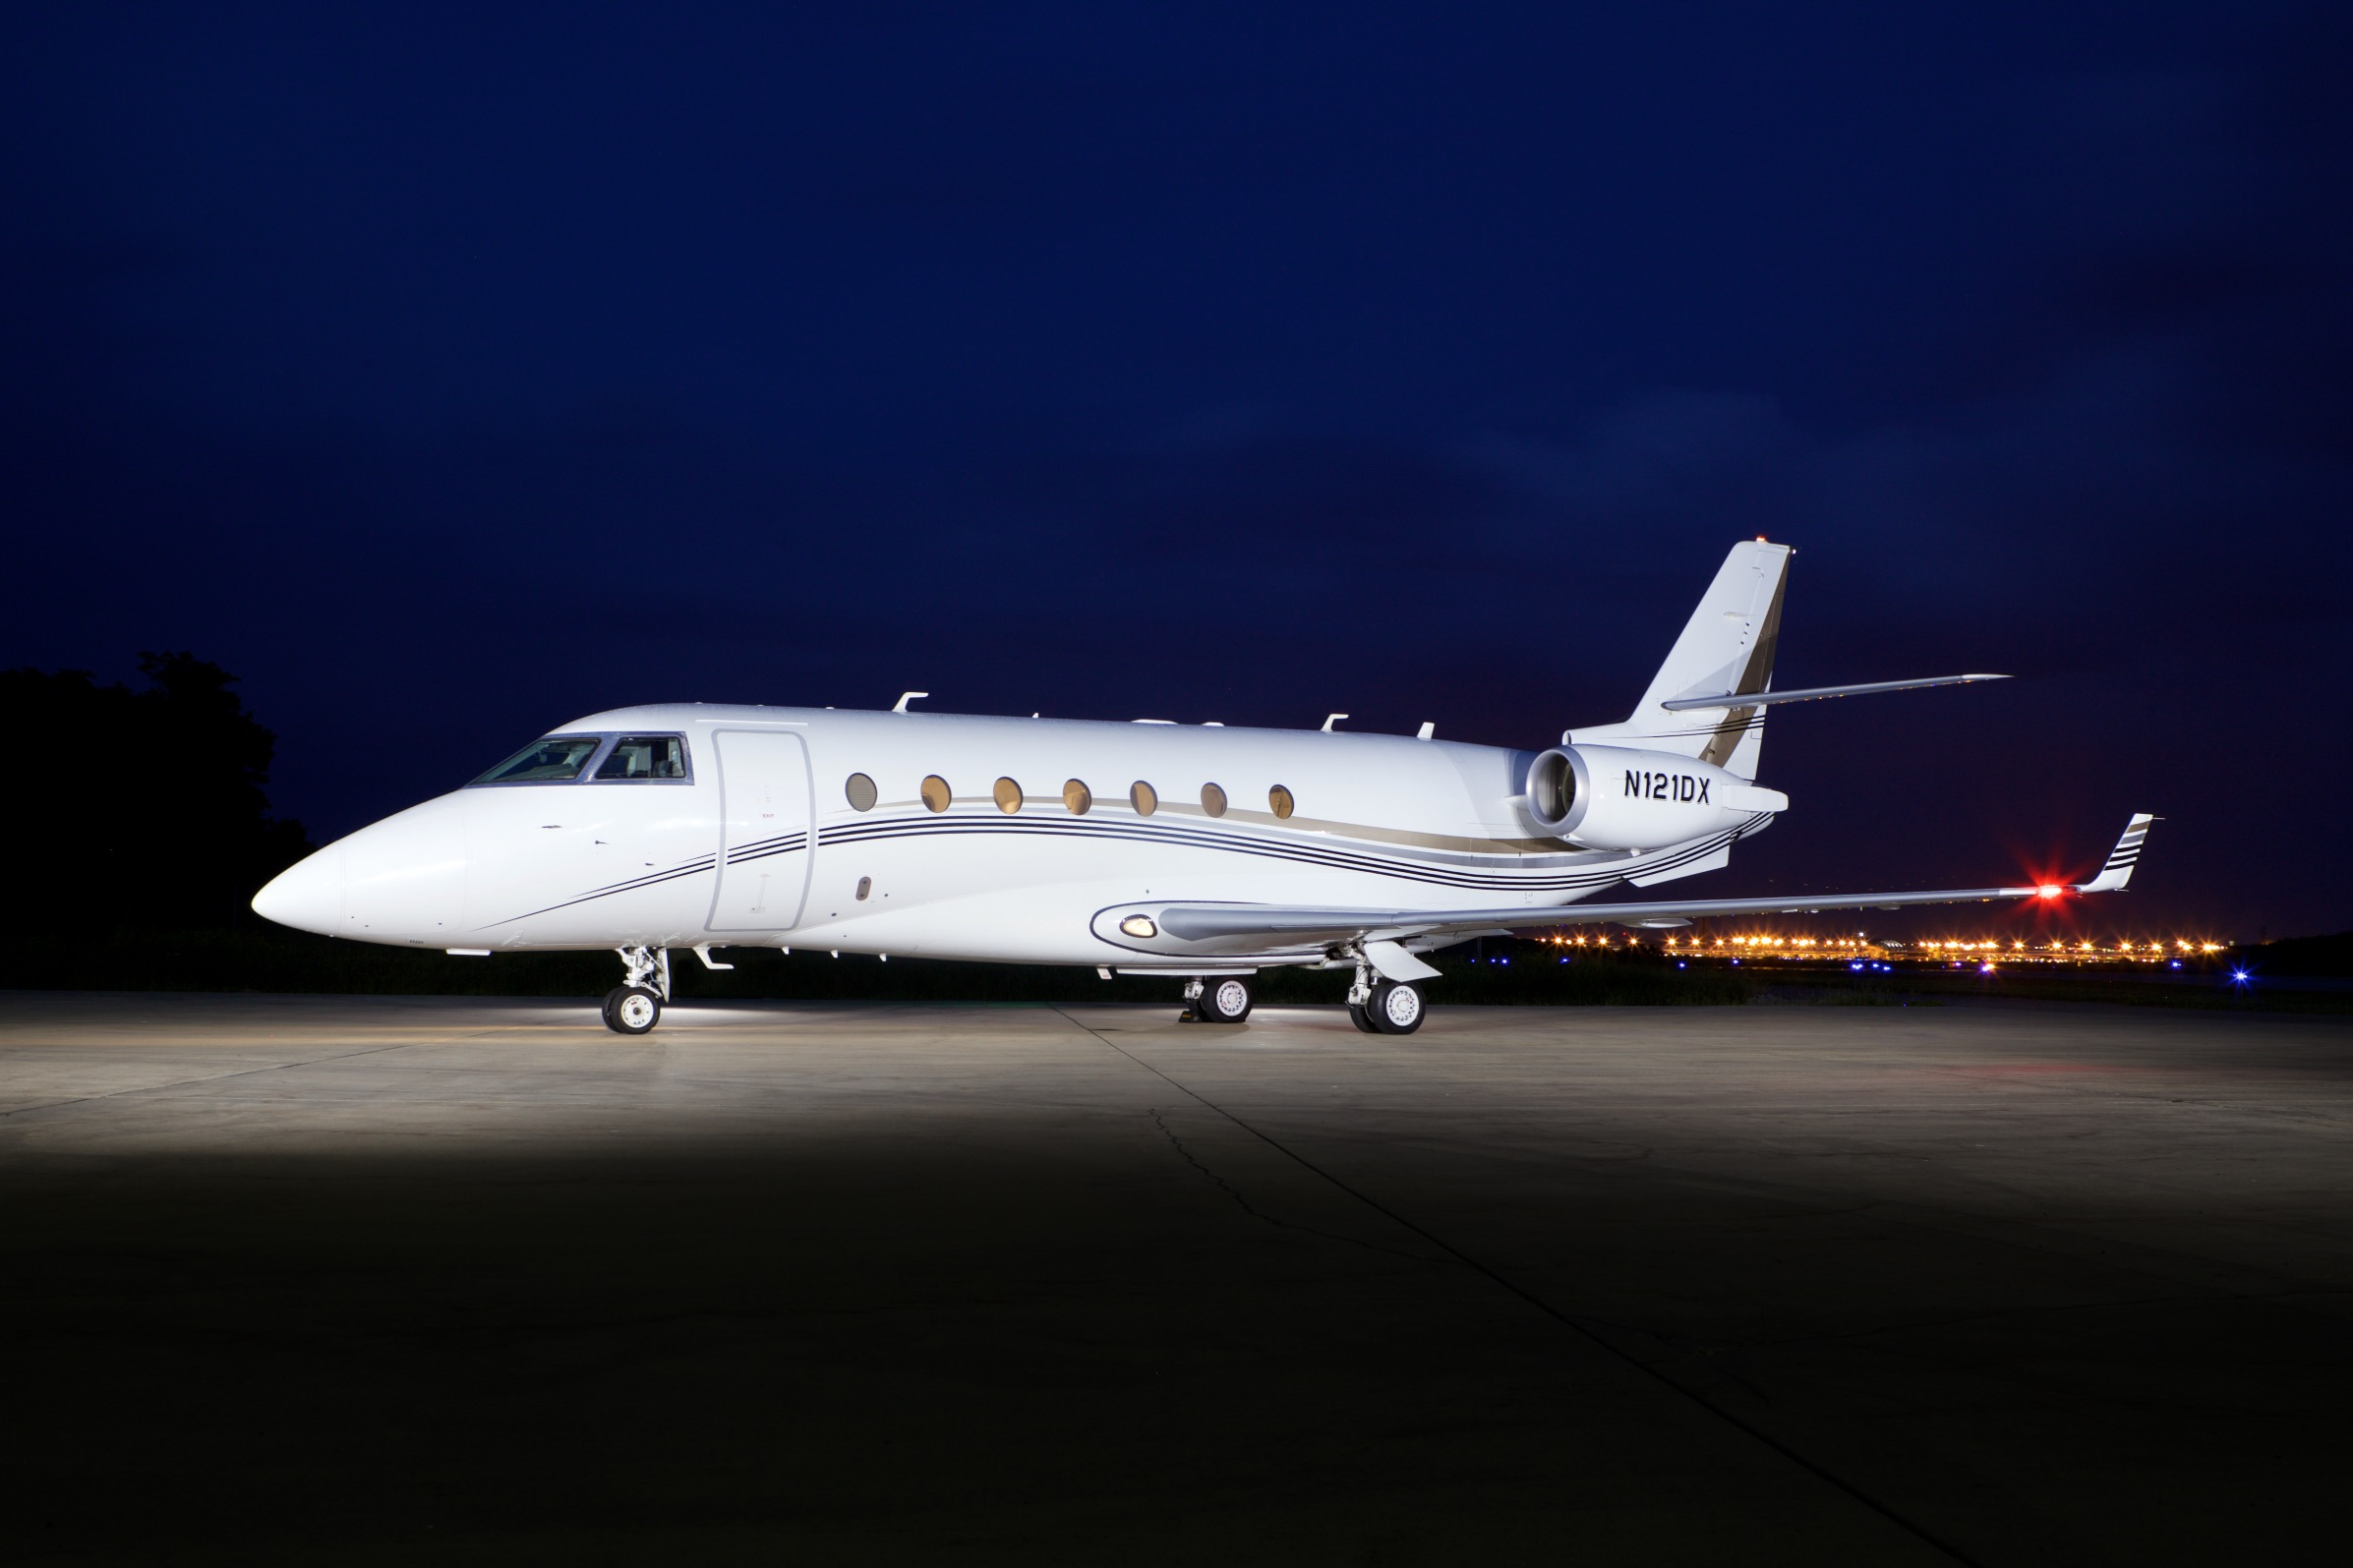 Luxury Aircraft For Sale  Find Private Jet  Search Airplanes For Sale